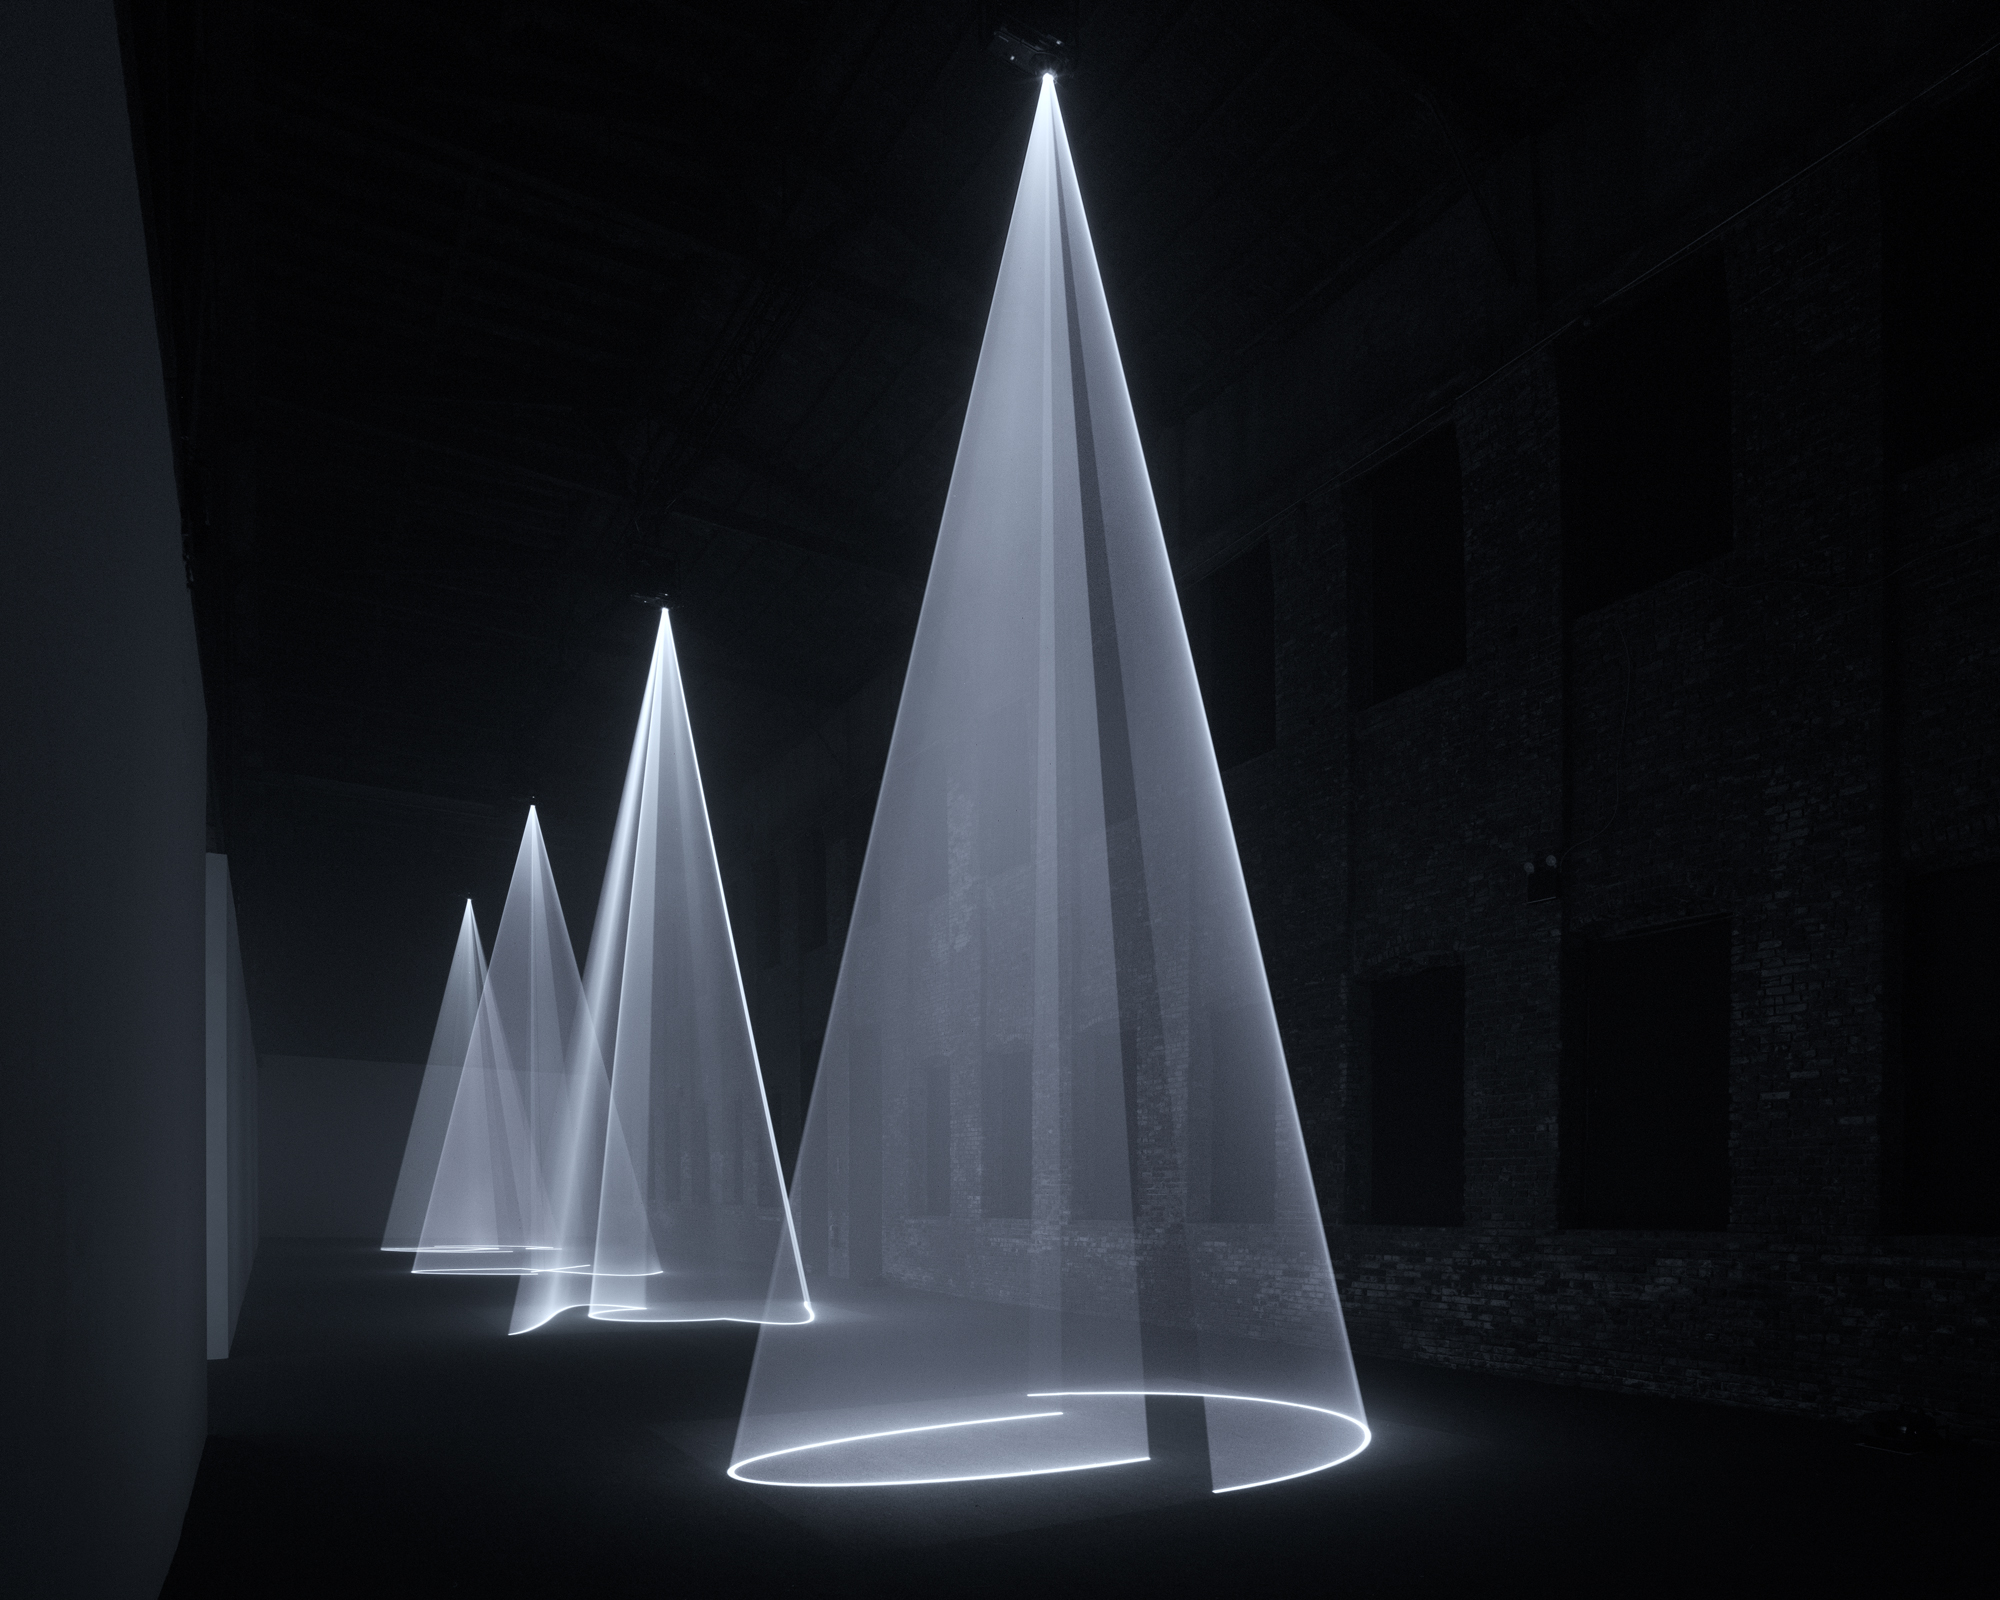 Installation view. Solid Light Works: Anthony McCall. Curated by Gabriel Florenz. Pioneer Works, New York, January 12 – March 11, 2018. © Dan Bradica